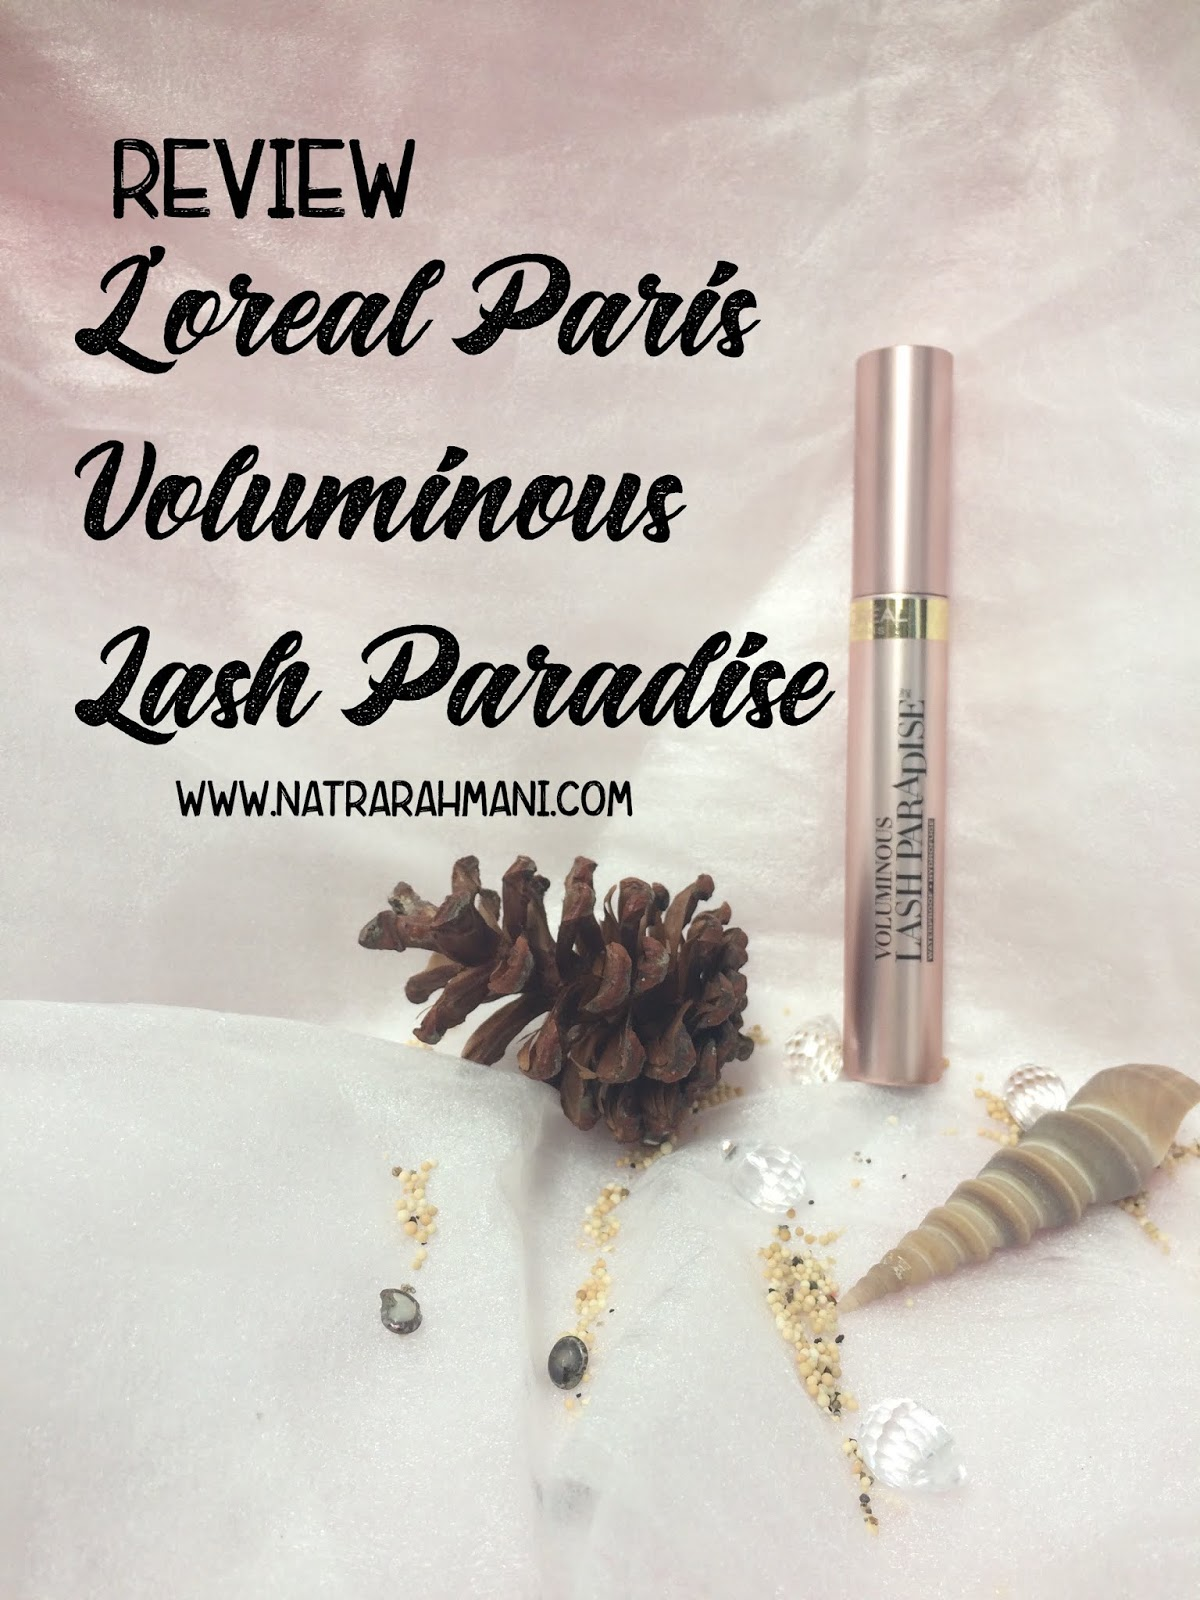 review-l'oreal-paris-voluminous-lash-paradise-natrarahman